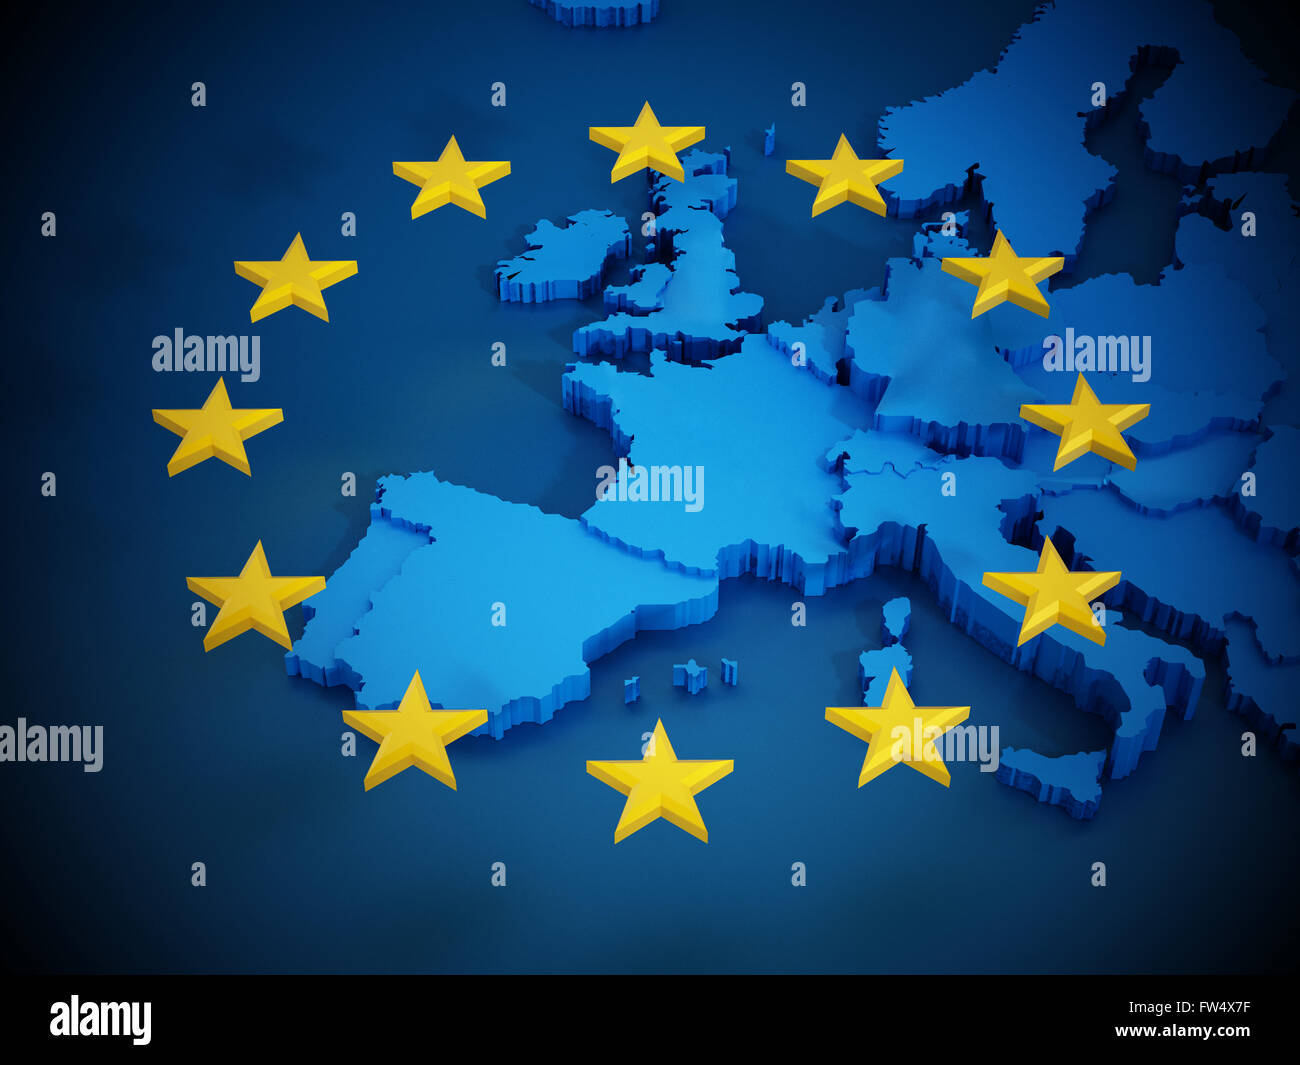 European Union Map Stock Photos   European Union Map Stock Images     European Union map and aligned stars in circle shape forming a flag     Stock Image